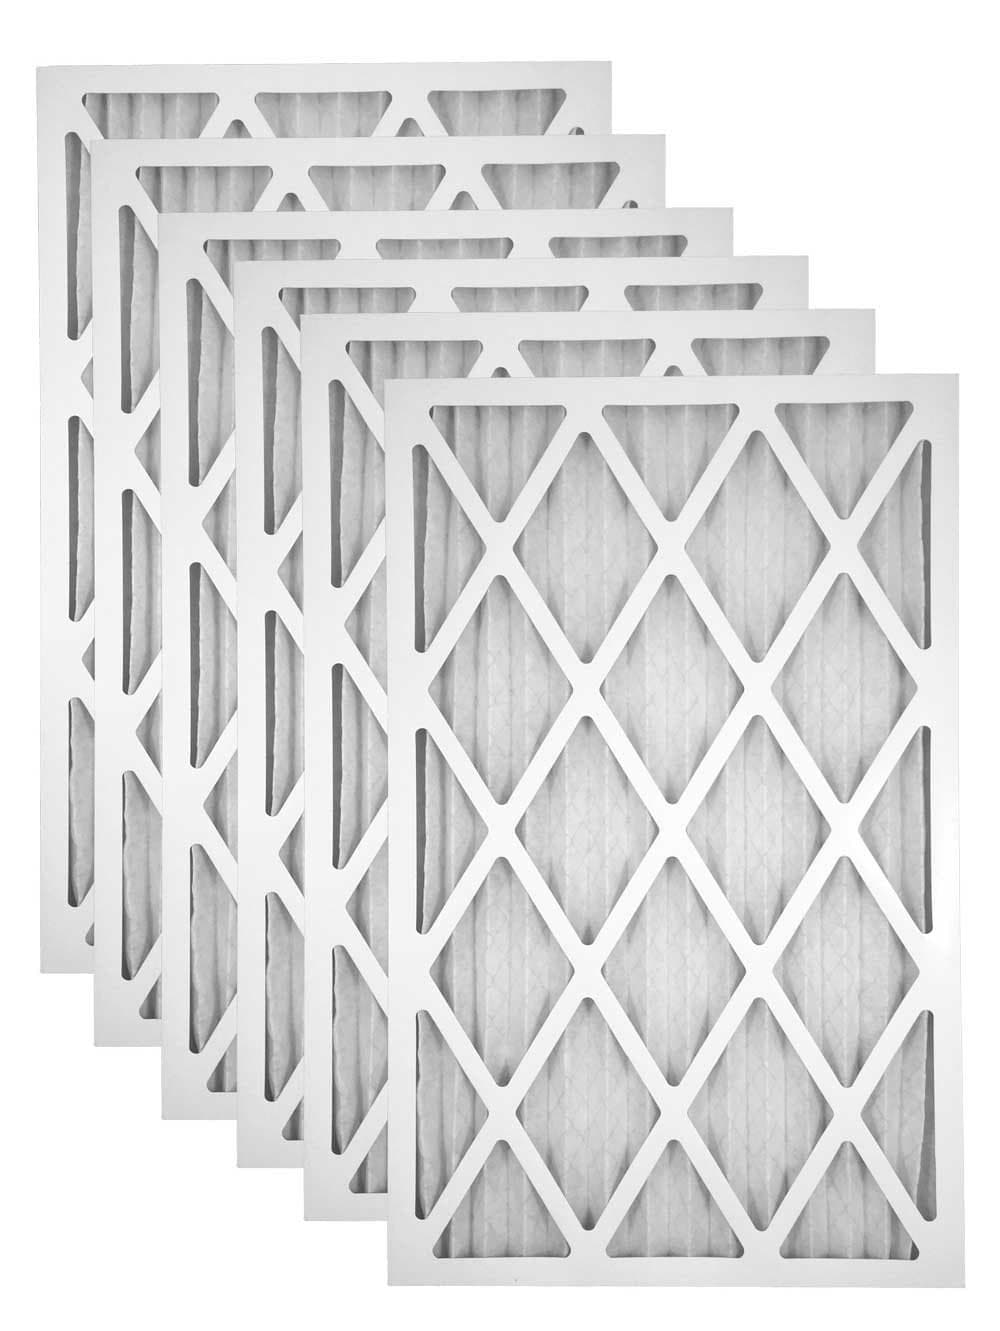 20x24x1 Merv 8 Pleated AC Furnace Filter - Case of 6